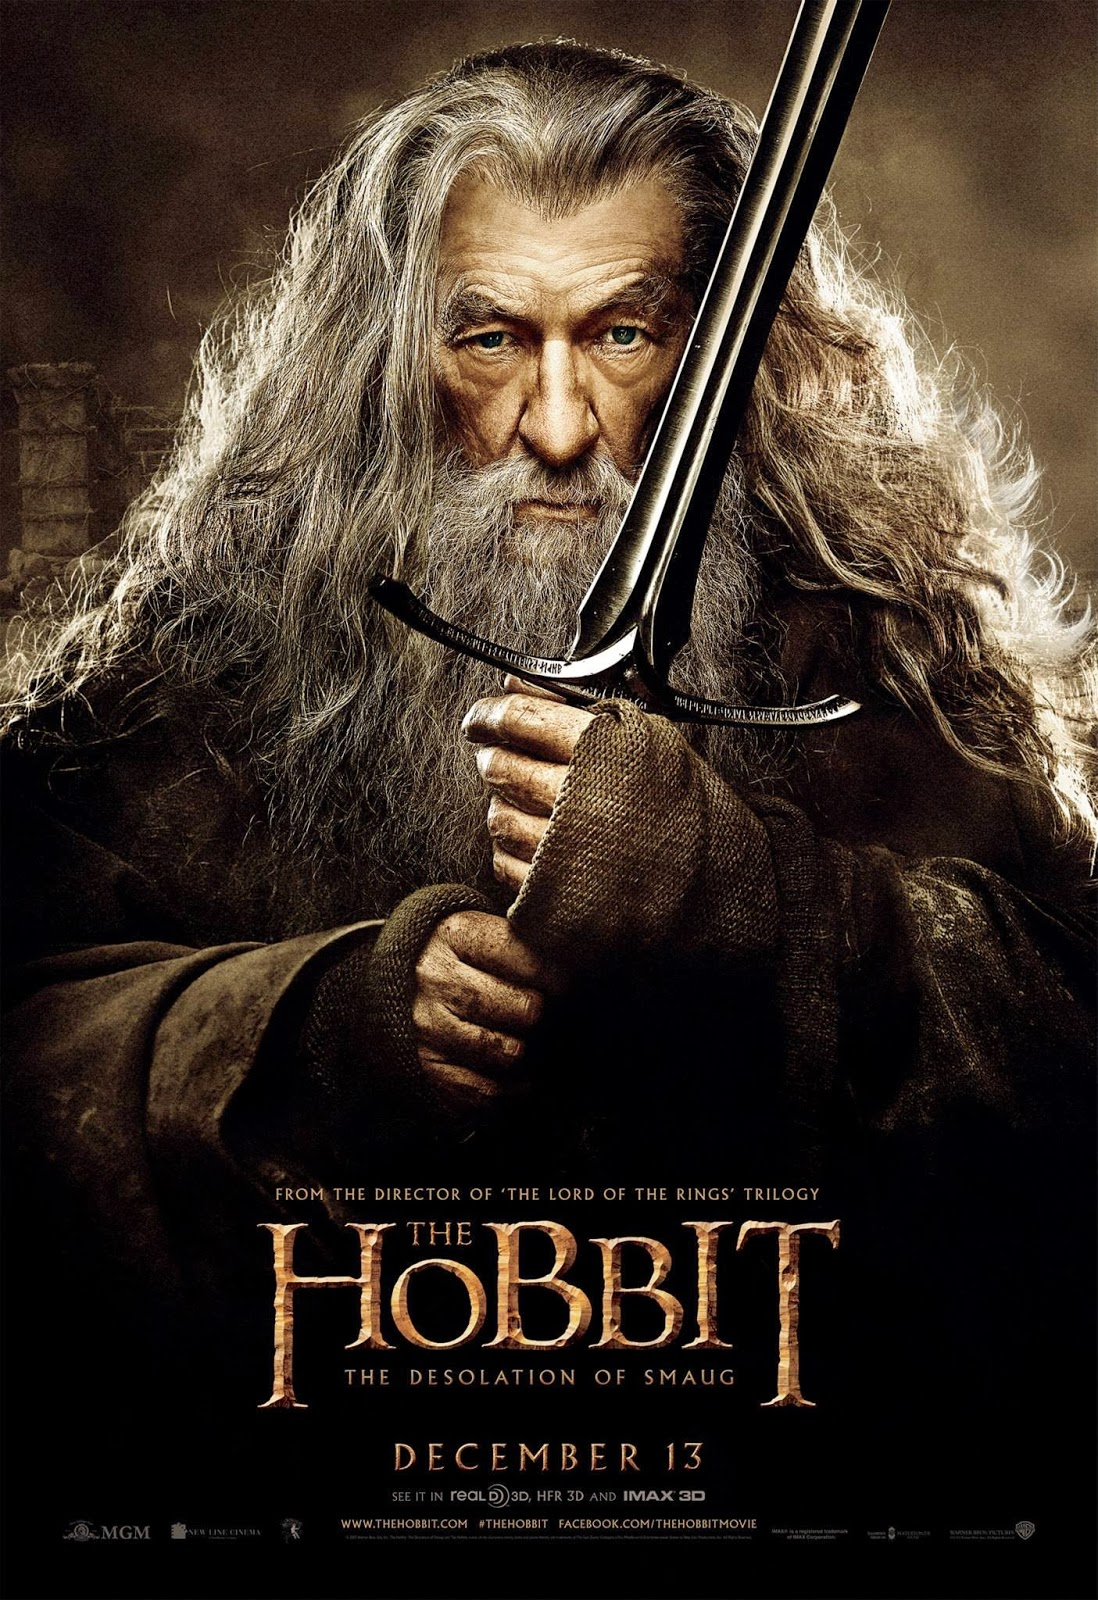 Leapbackblog Movies Tv Games Music And Whatever The Hobbit The Desolation Of Smaug 2013 Review